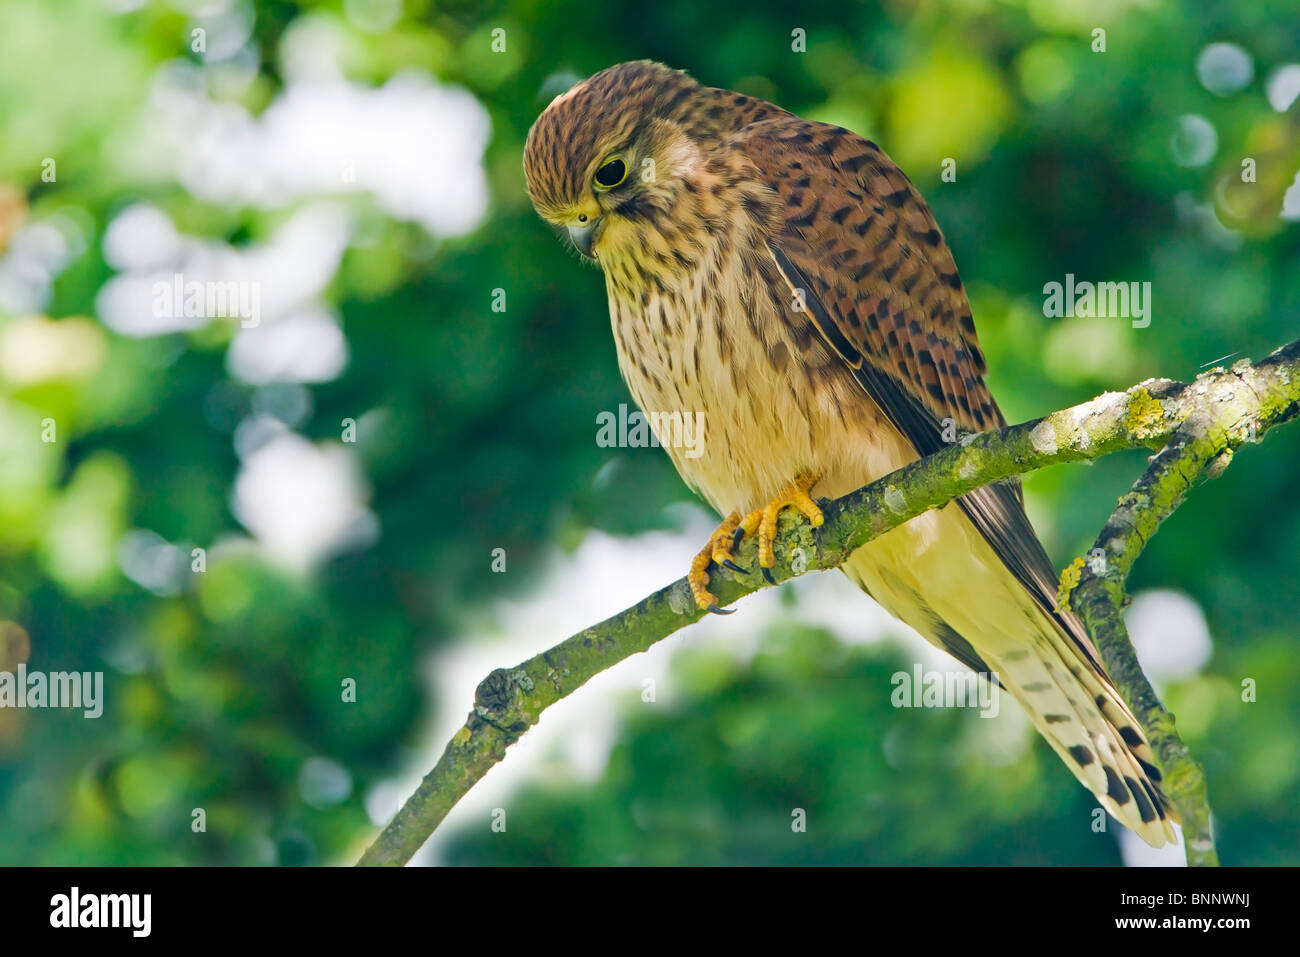 Kestrel perched in an oak tree looking down for a possible meal below. - Stock Image